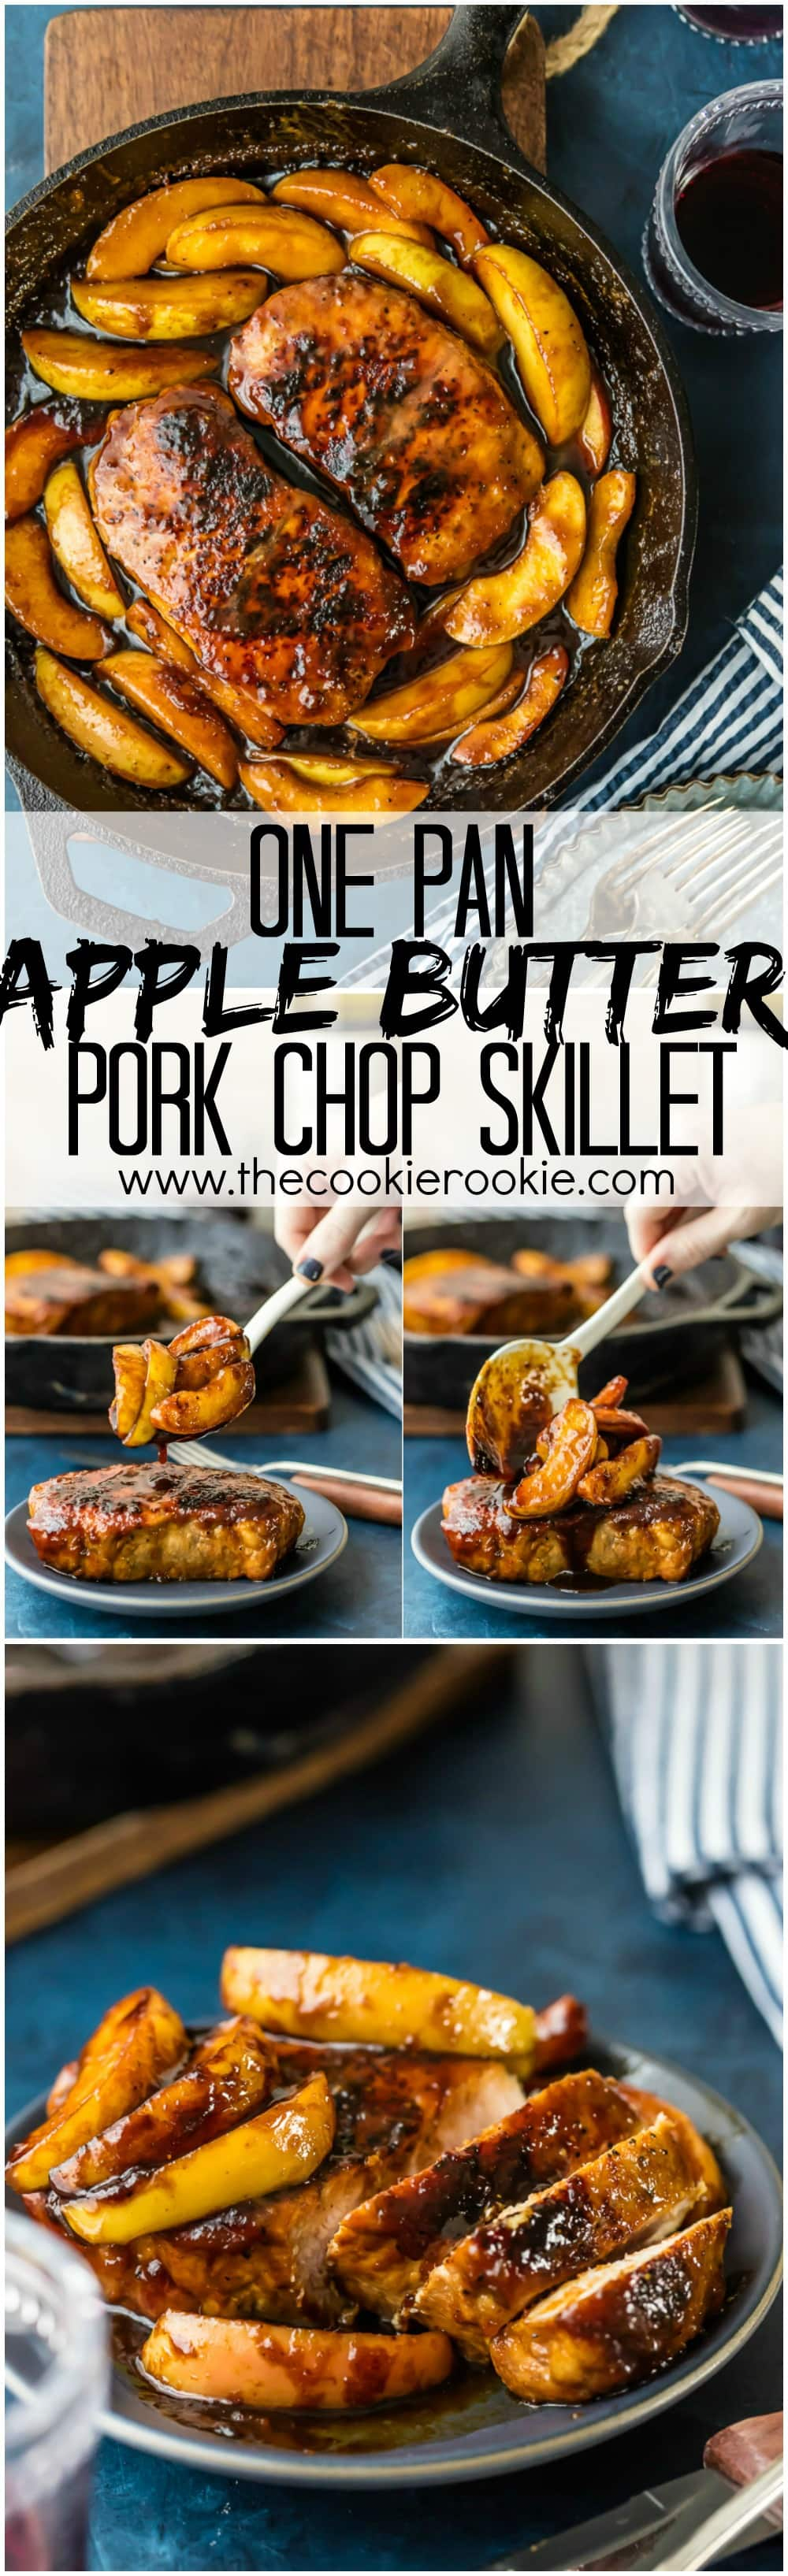 One Pan Apple Butter Pork Chop Skillete Perfect Recipe For Fall And